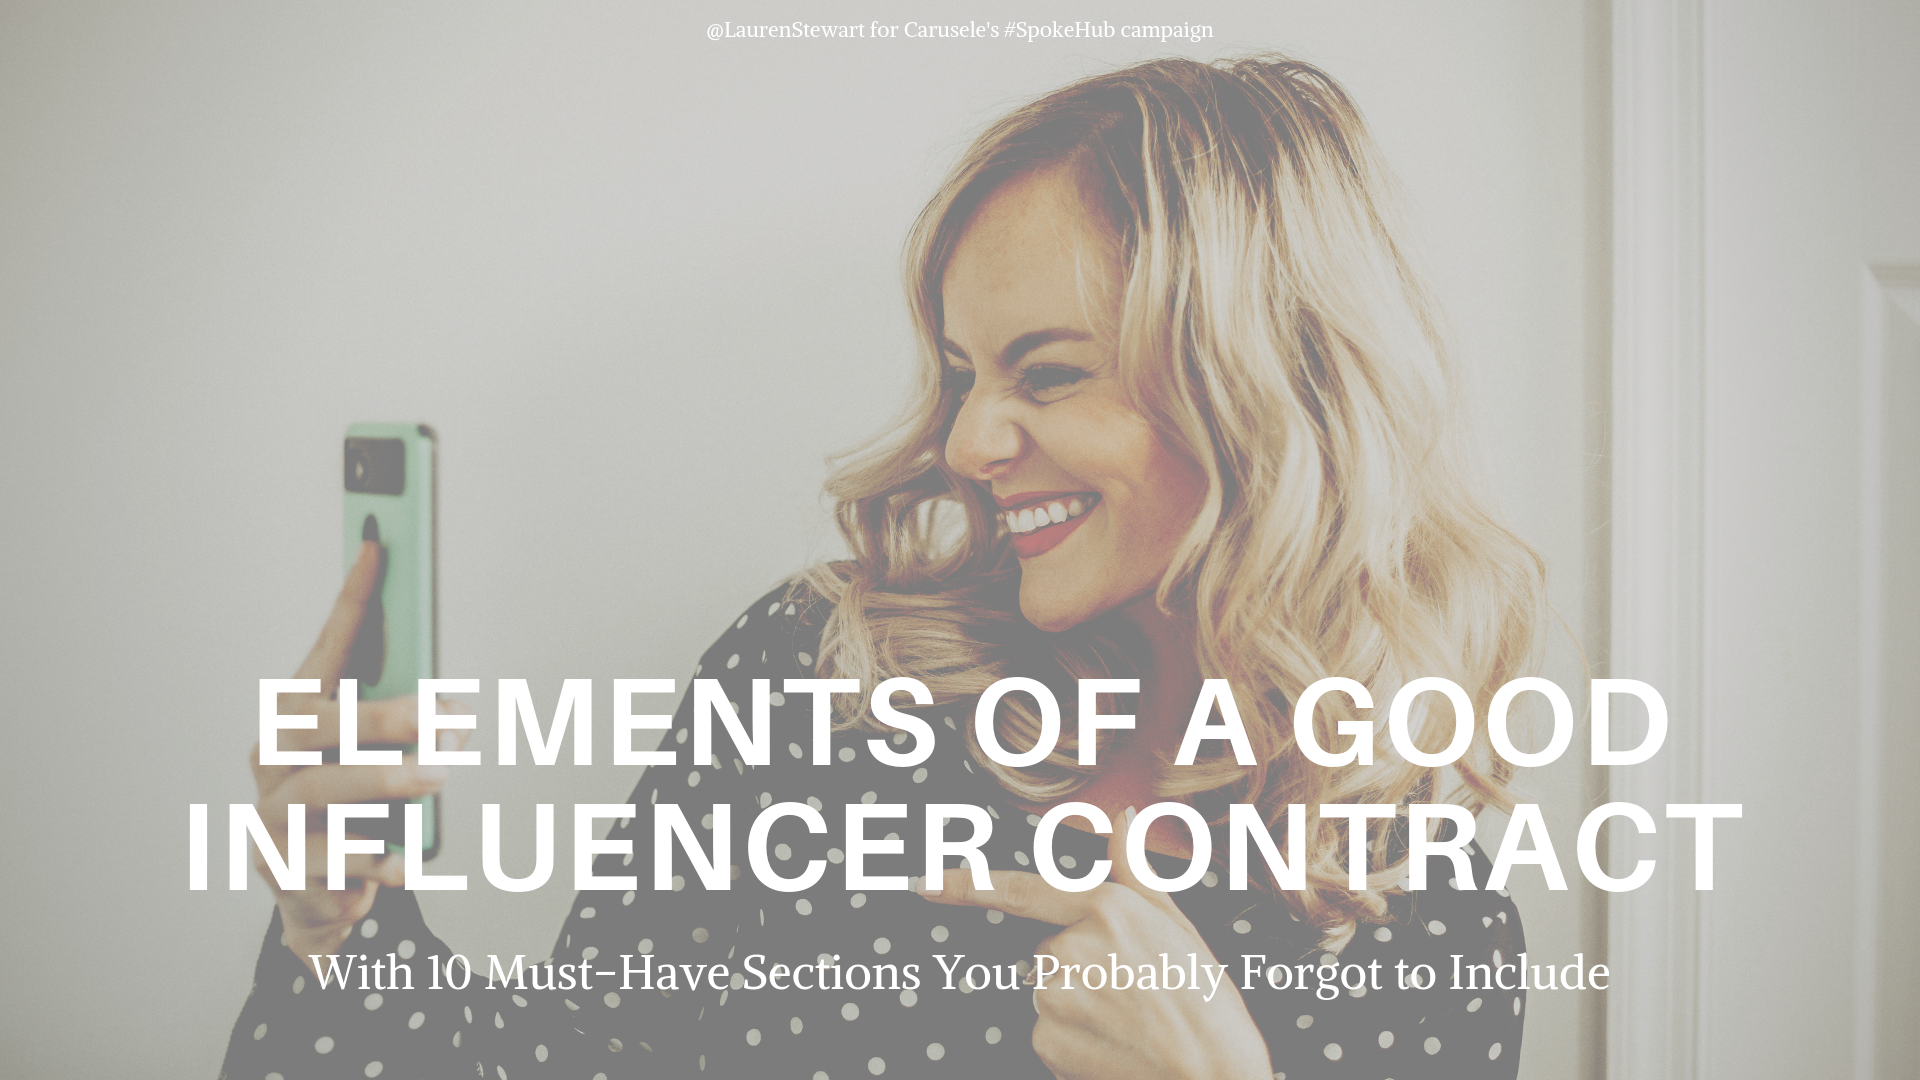 Influencer Contract Example - credit - Lauren Stewart for Carusele Influencer Marketing Agency